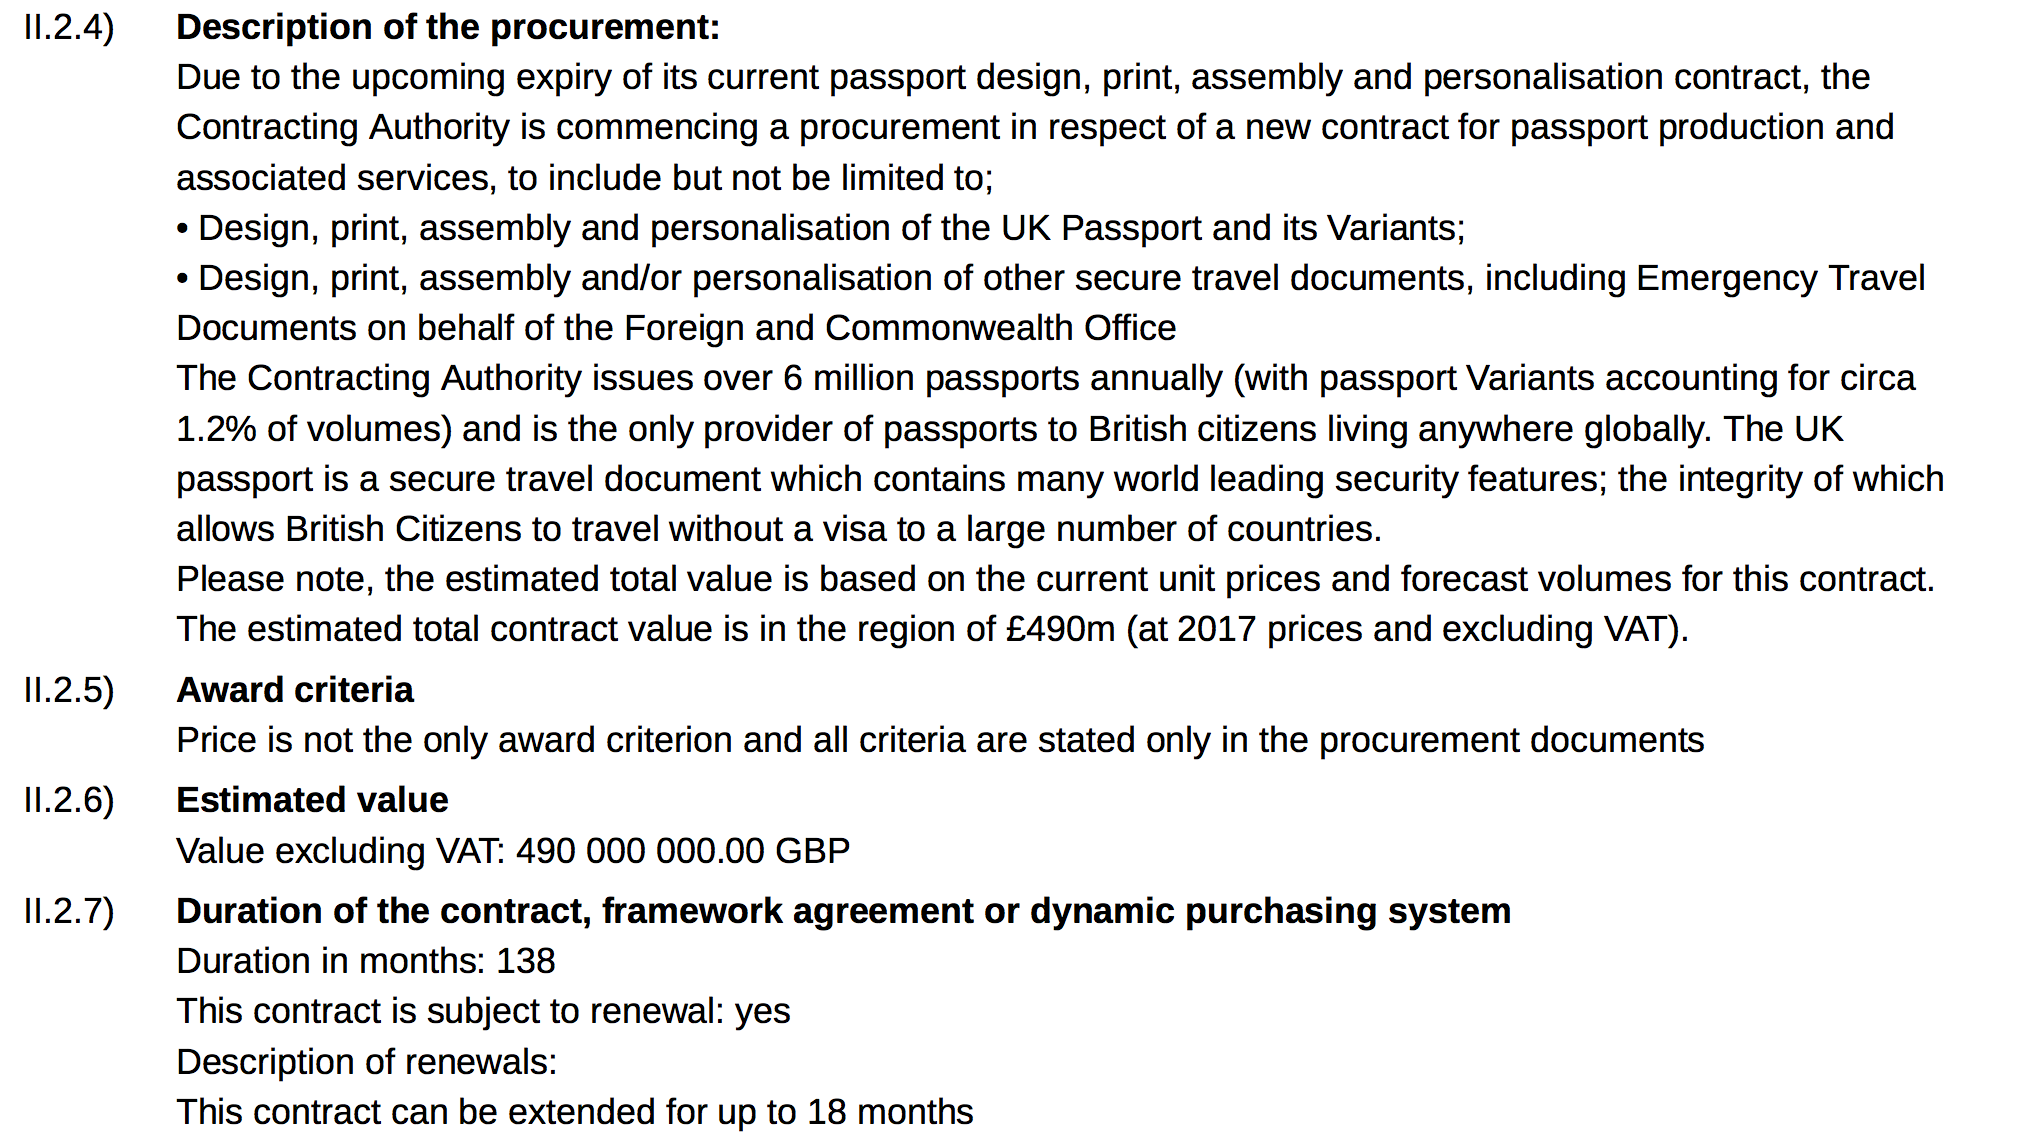 Extract of Government tender notice, 'Passport Production and Associated Services Contract', via contractsfinder.gov.uk